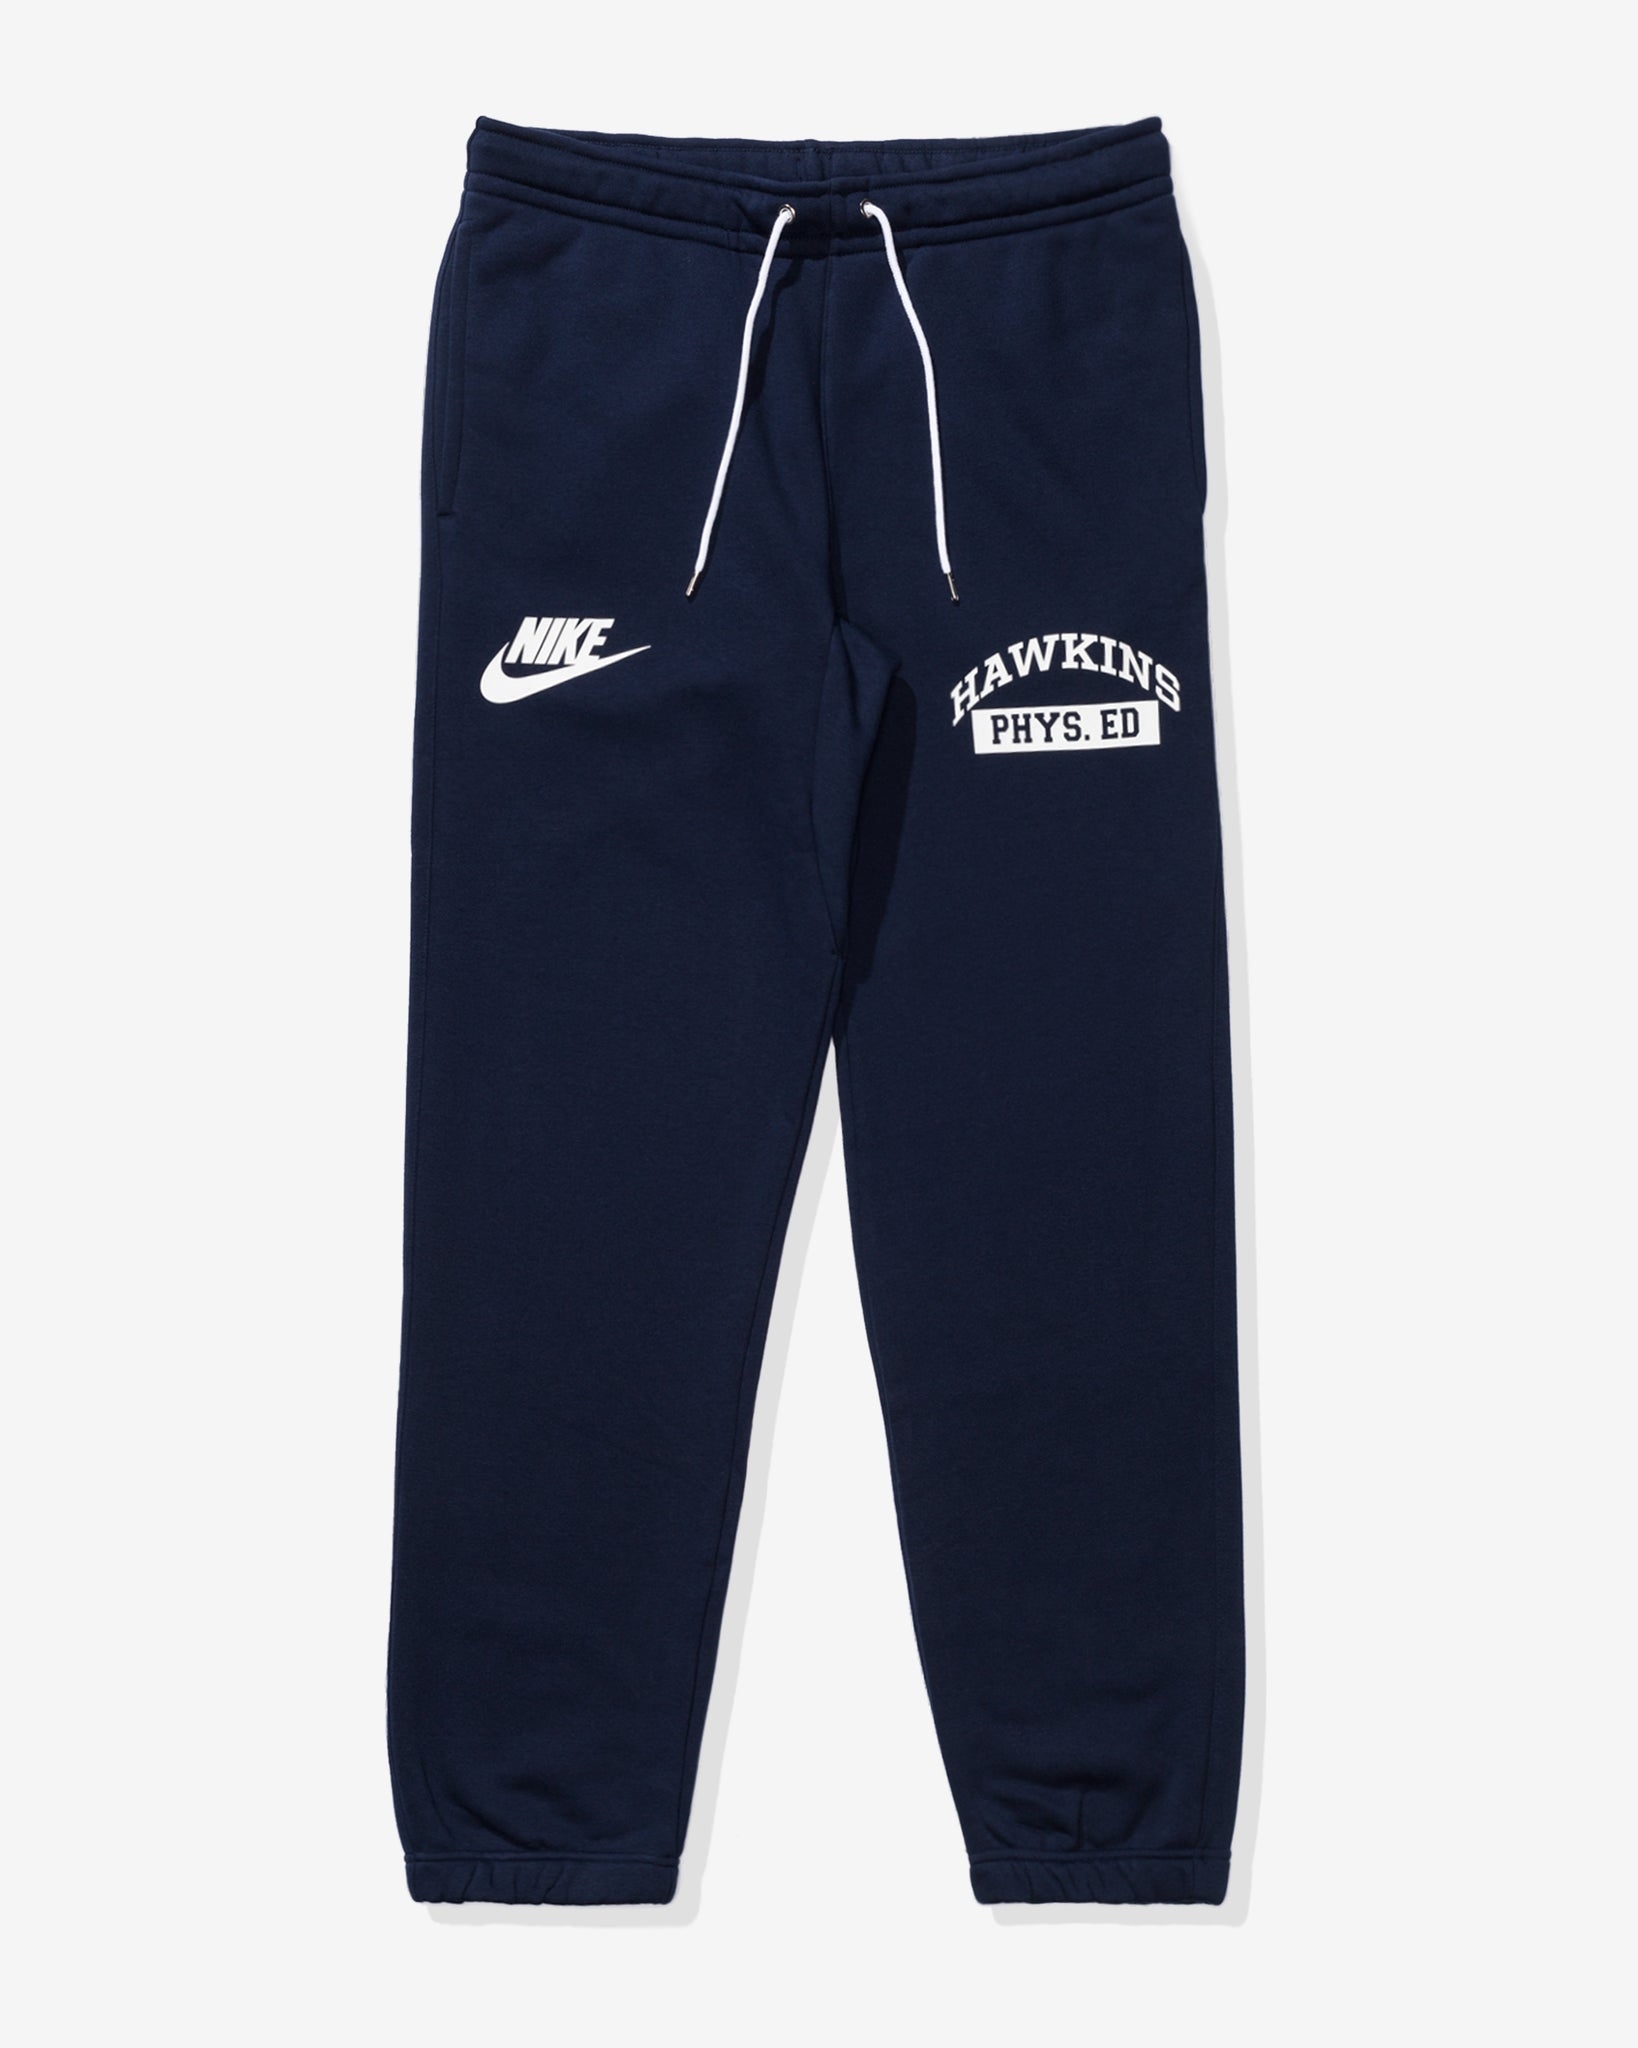 NIKE X STRANGER THINGS CLUB PANT - COLLEGENAVY/WHITE/SAIL